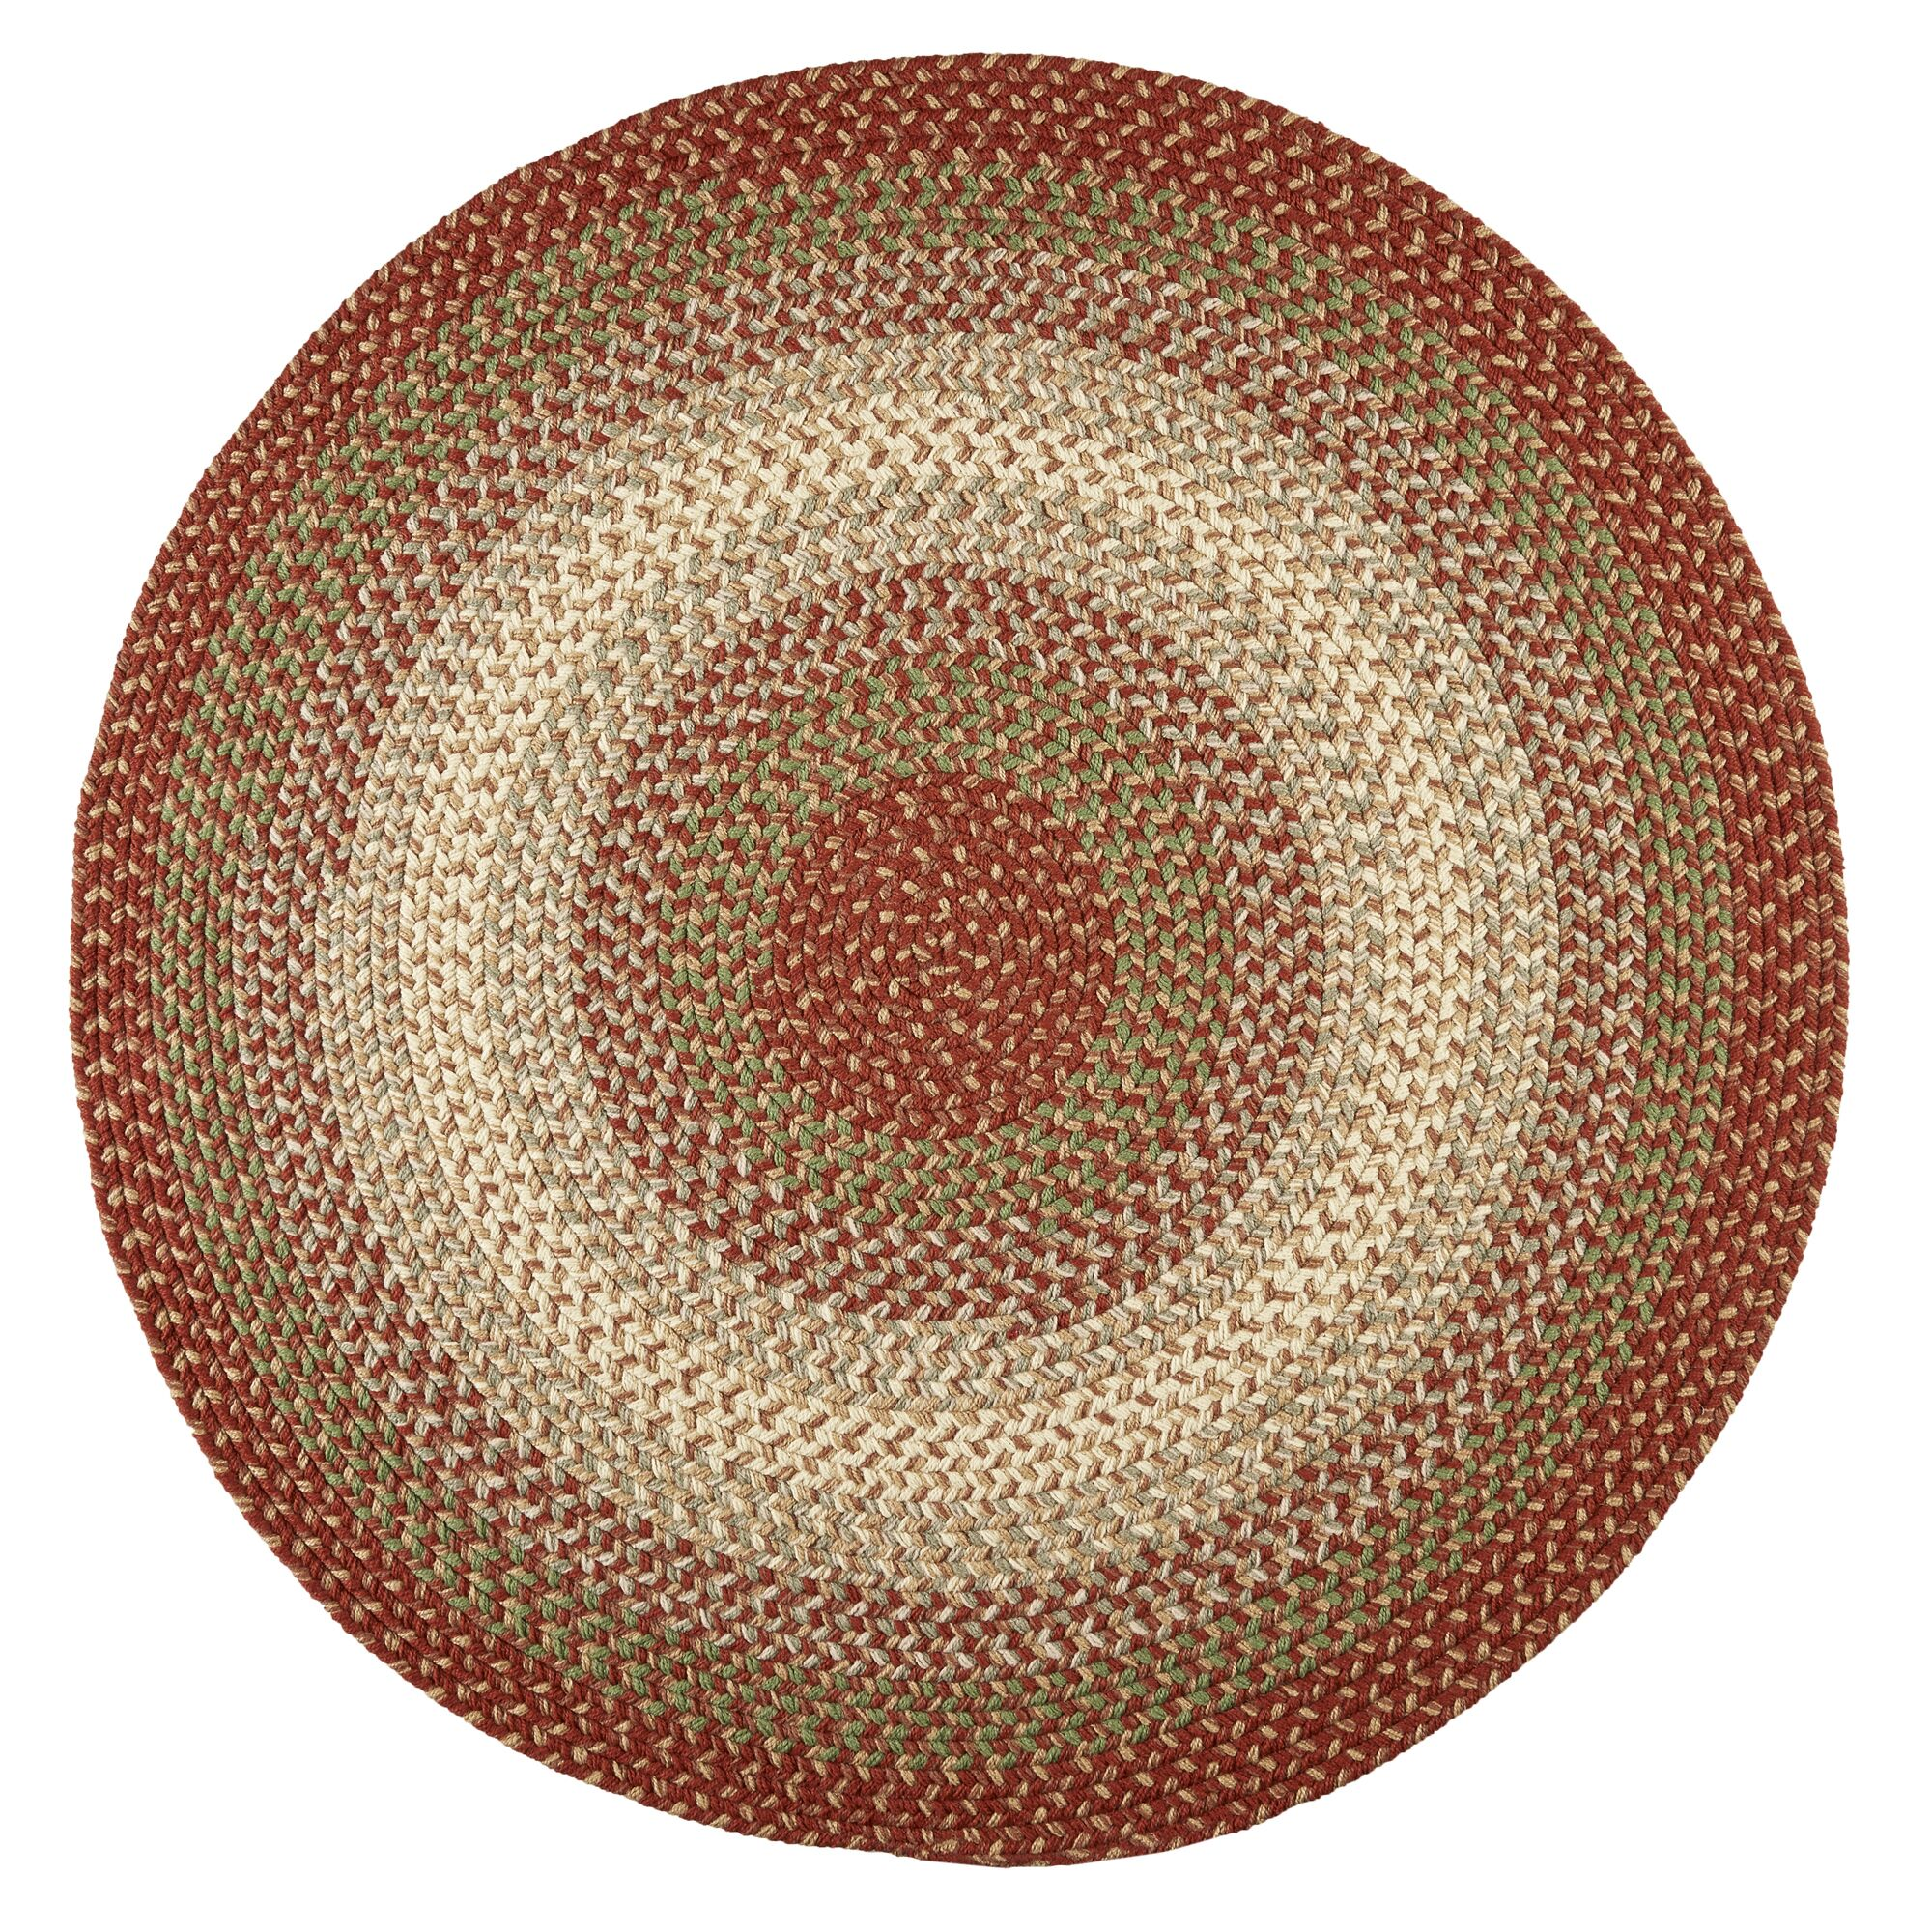 Handmade Indoor/Outdoor Area Rug Rug Size: Round 4'